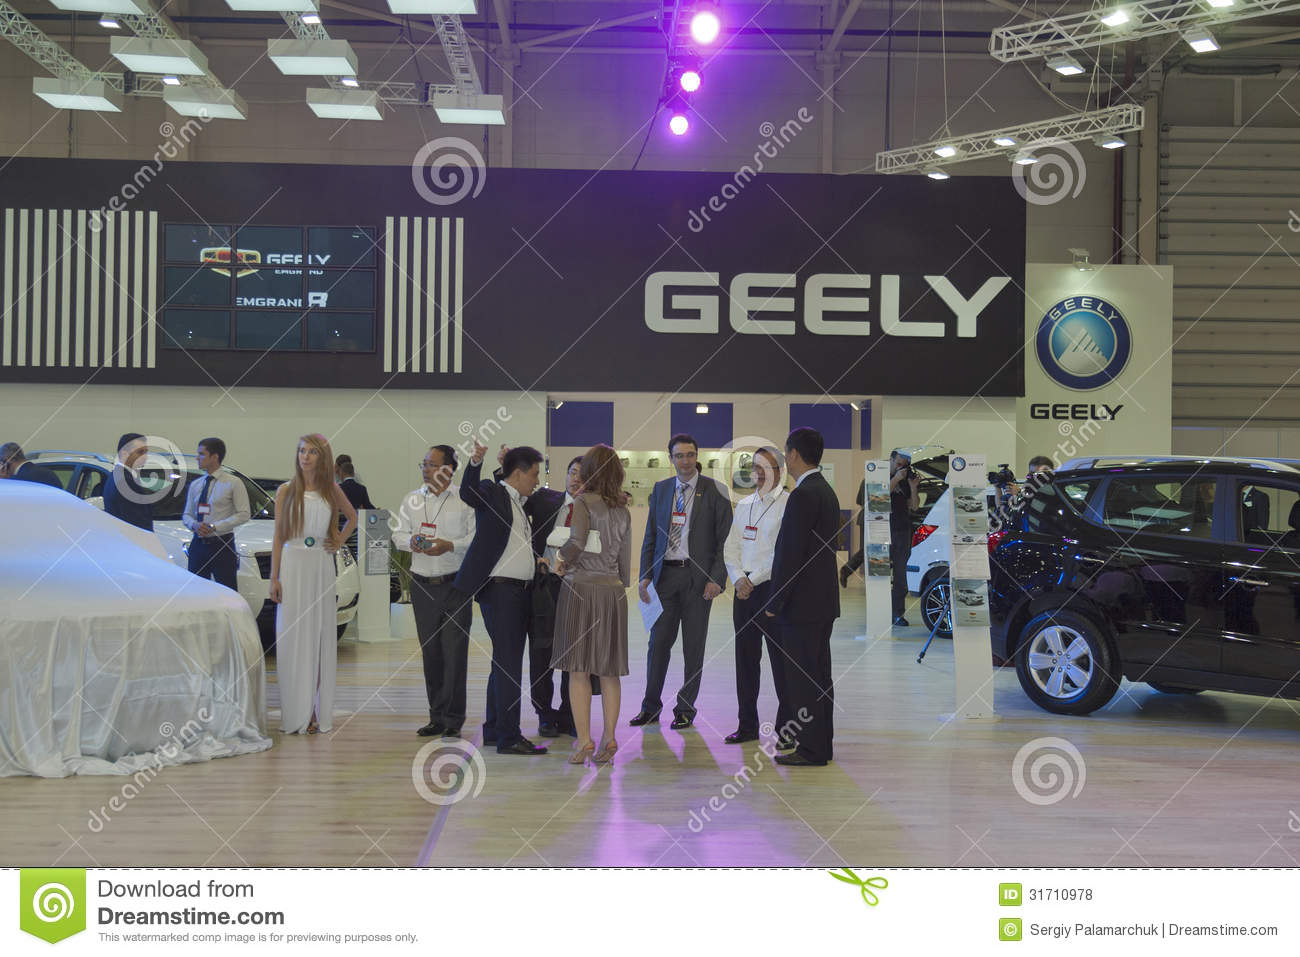 Exhibition Booth Sia : Geely automotive company booth editorial stock photo image of